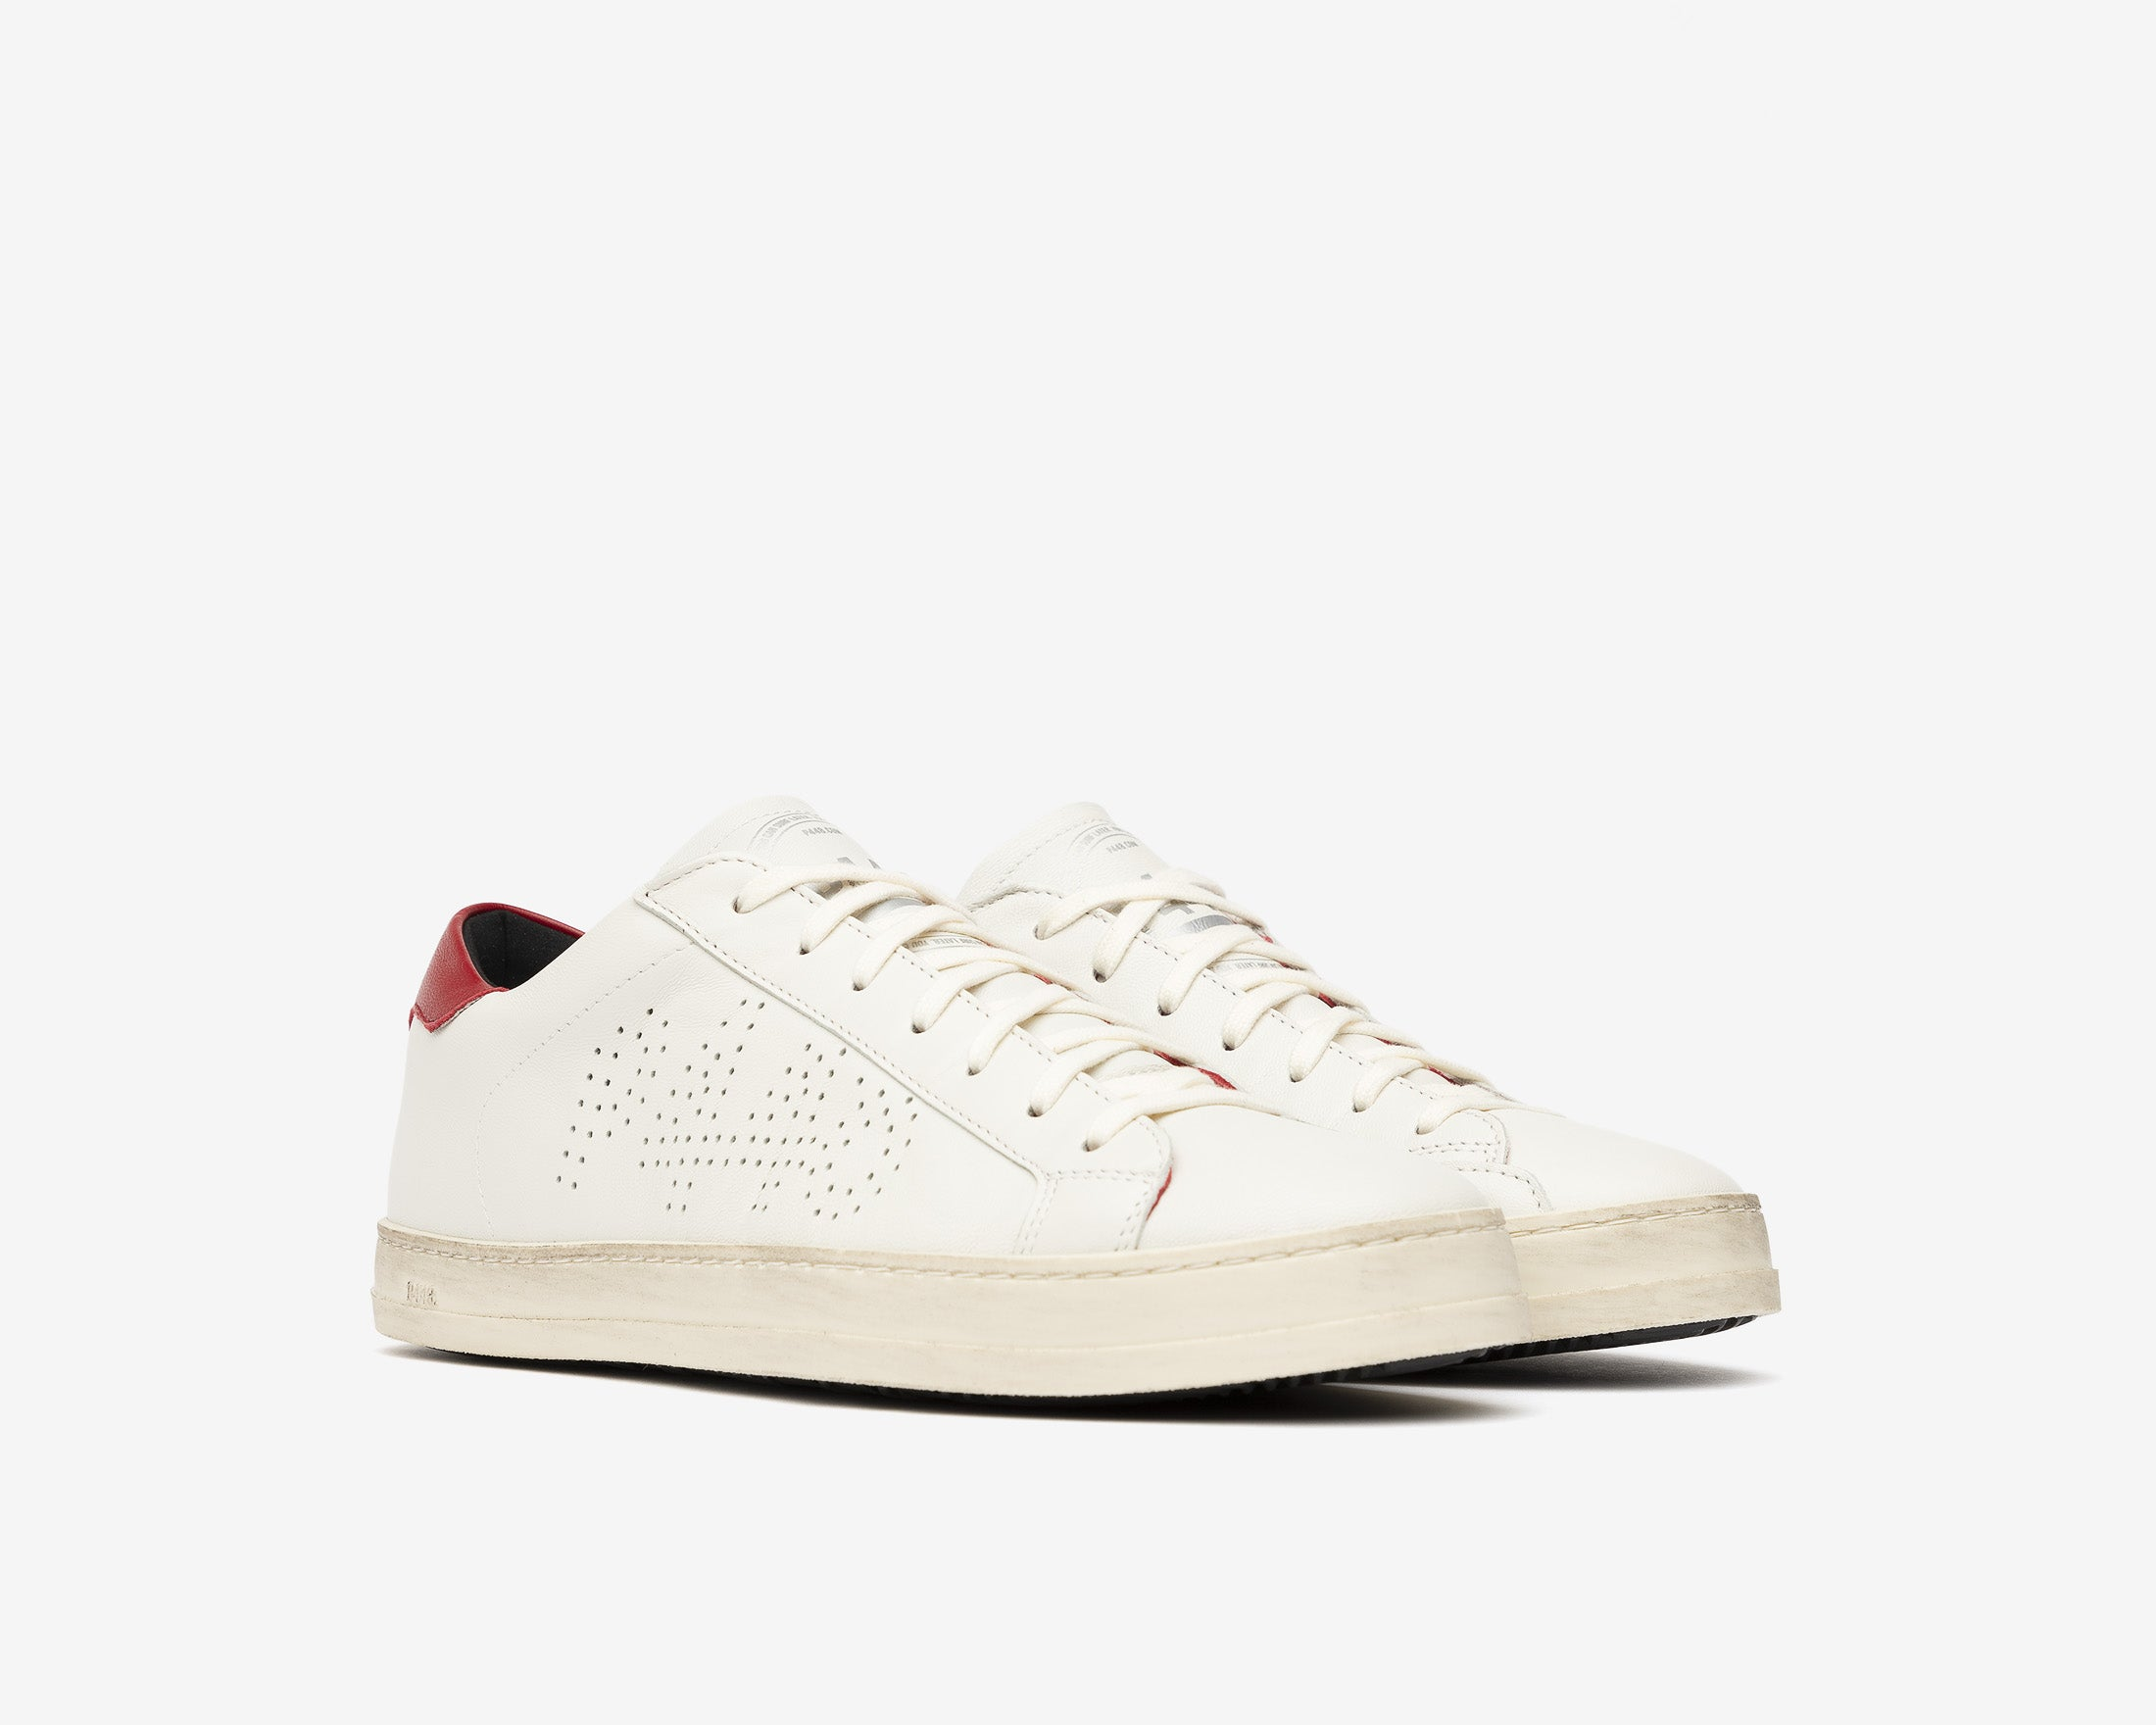 John Low-Top Sneaker in White/Red - Side